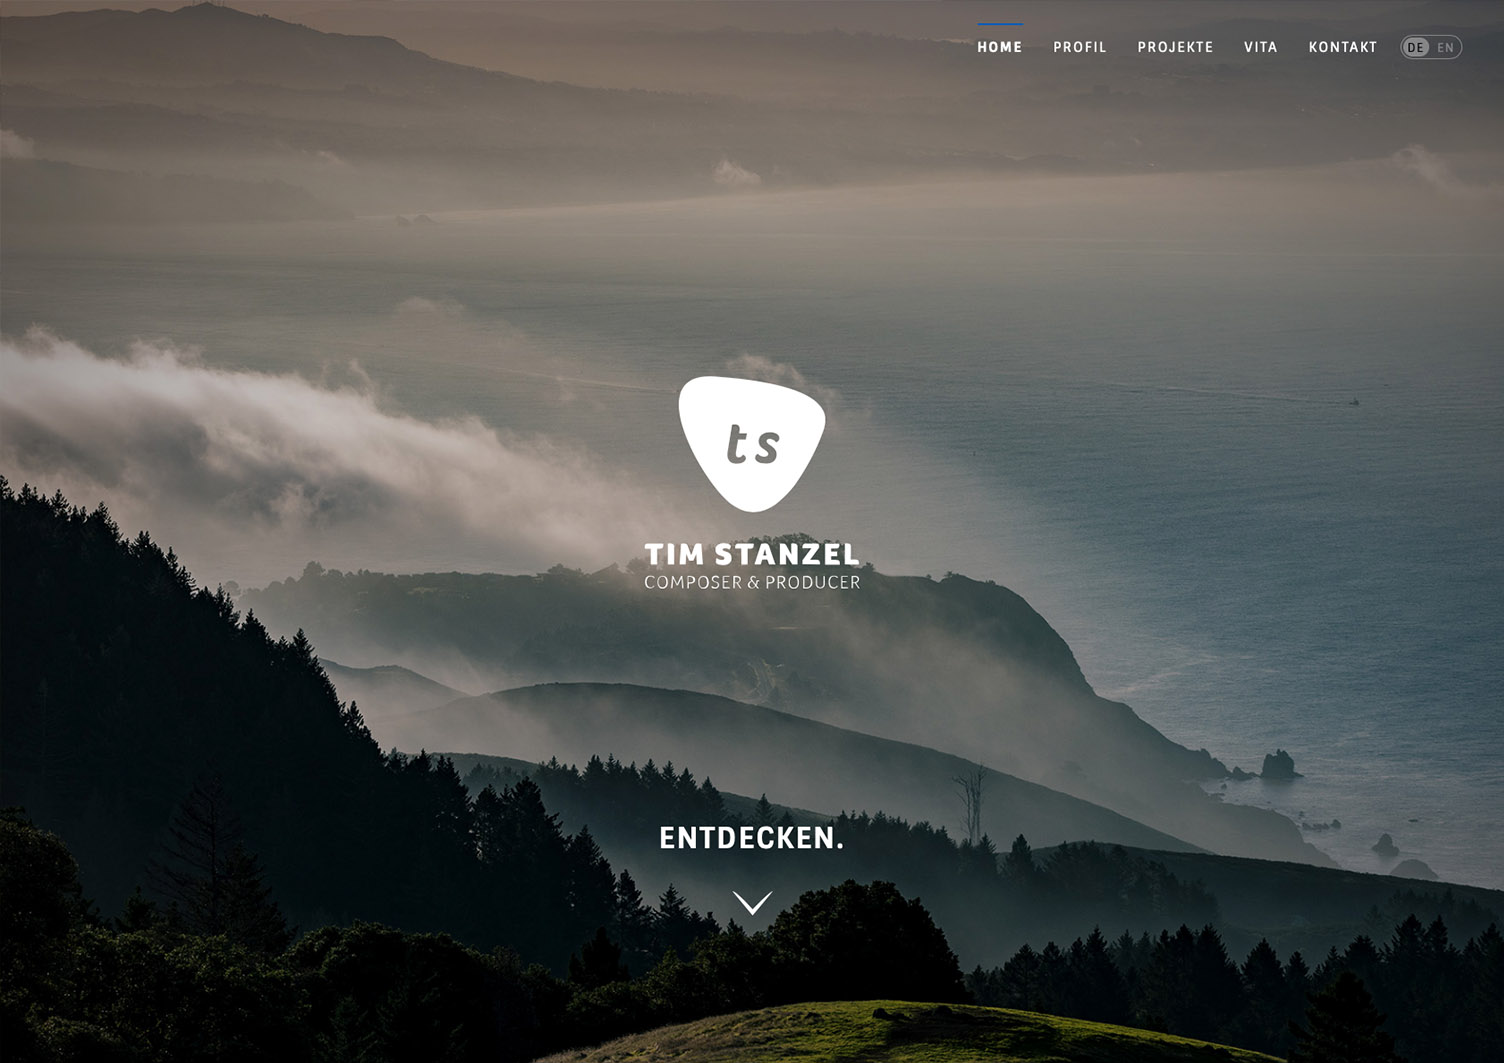 Web Design for composer Tim Stanzel, Berlin